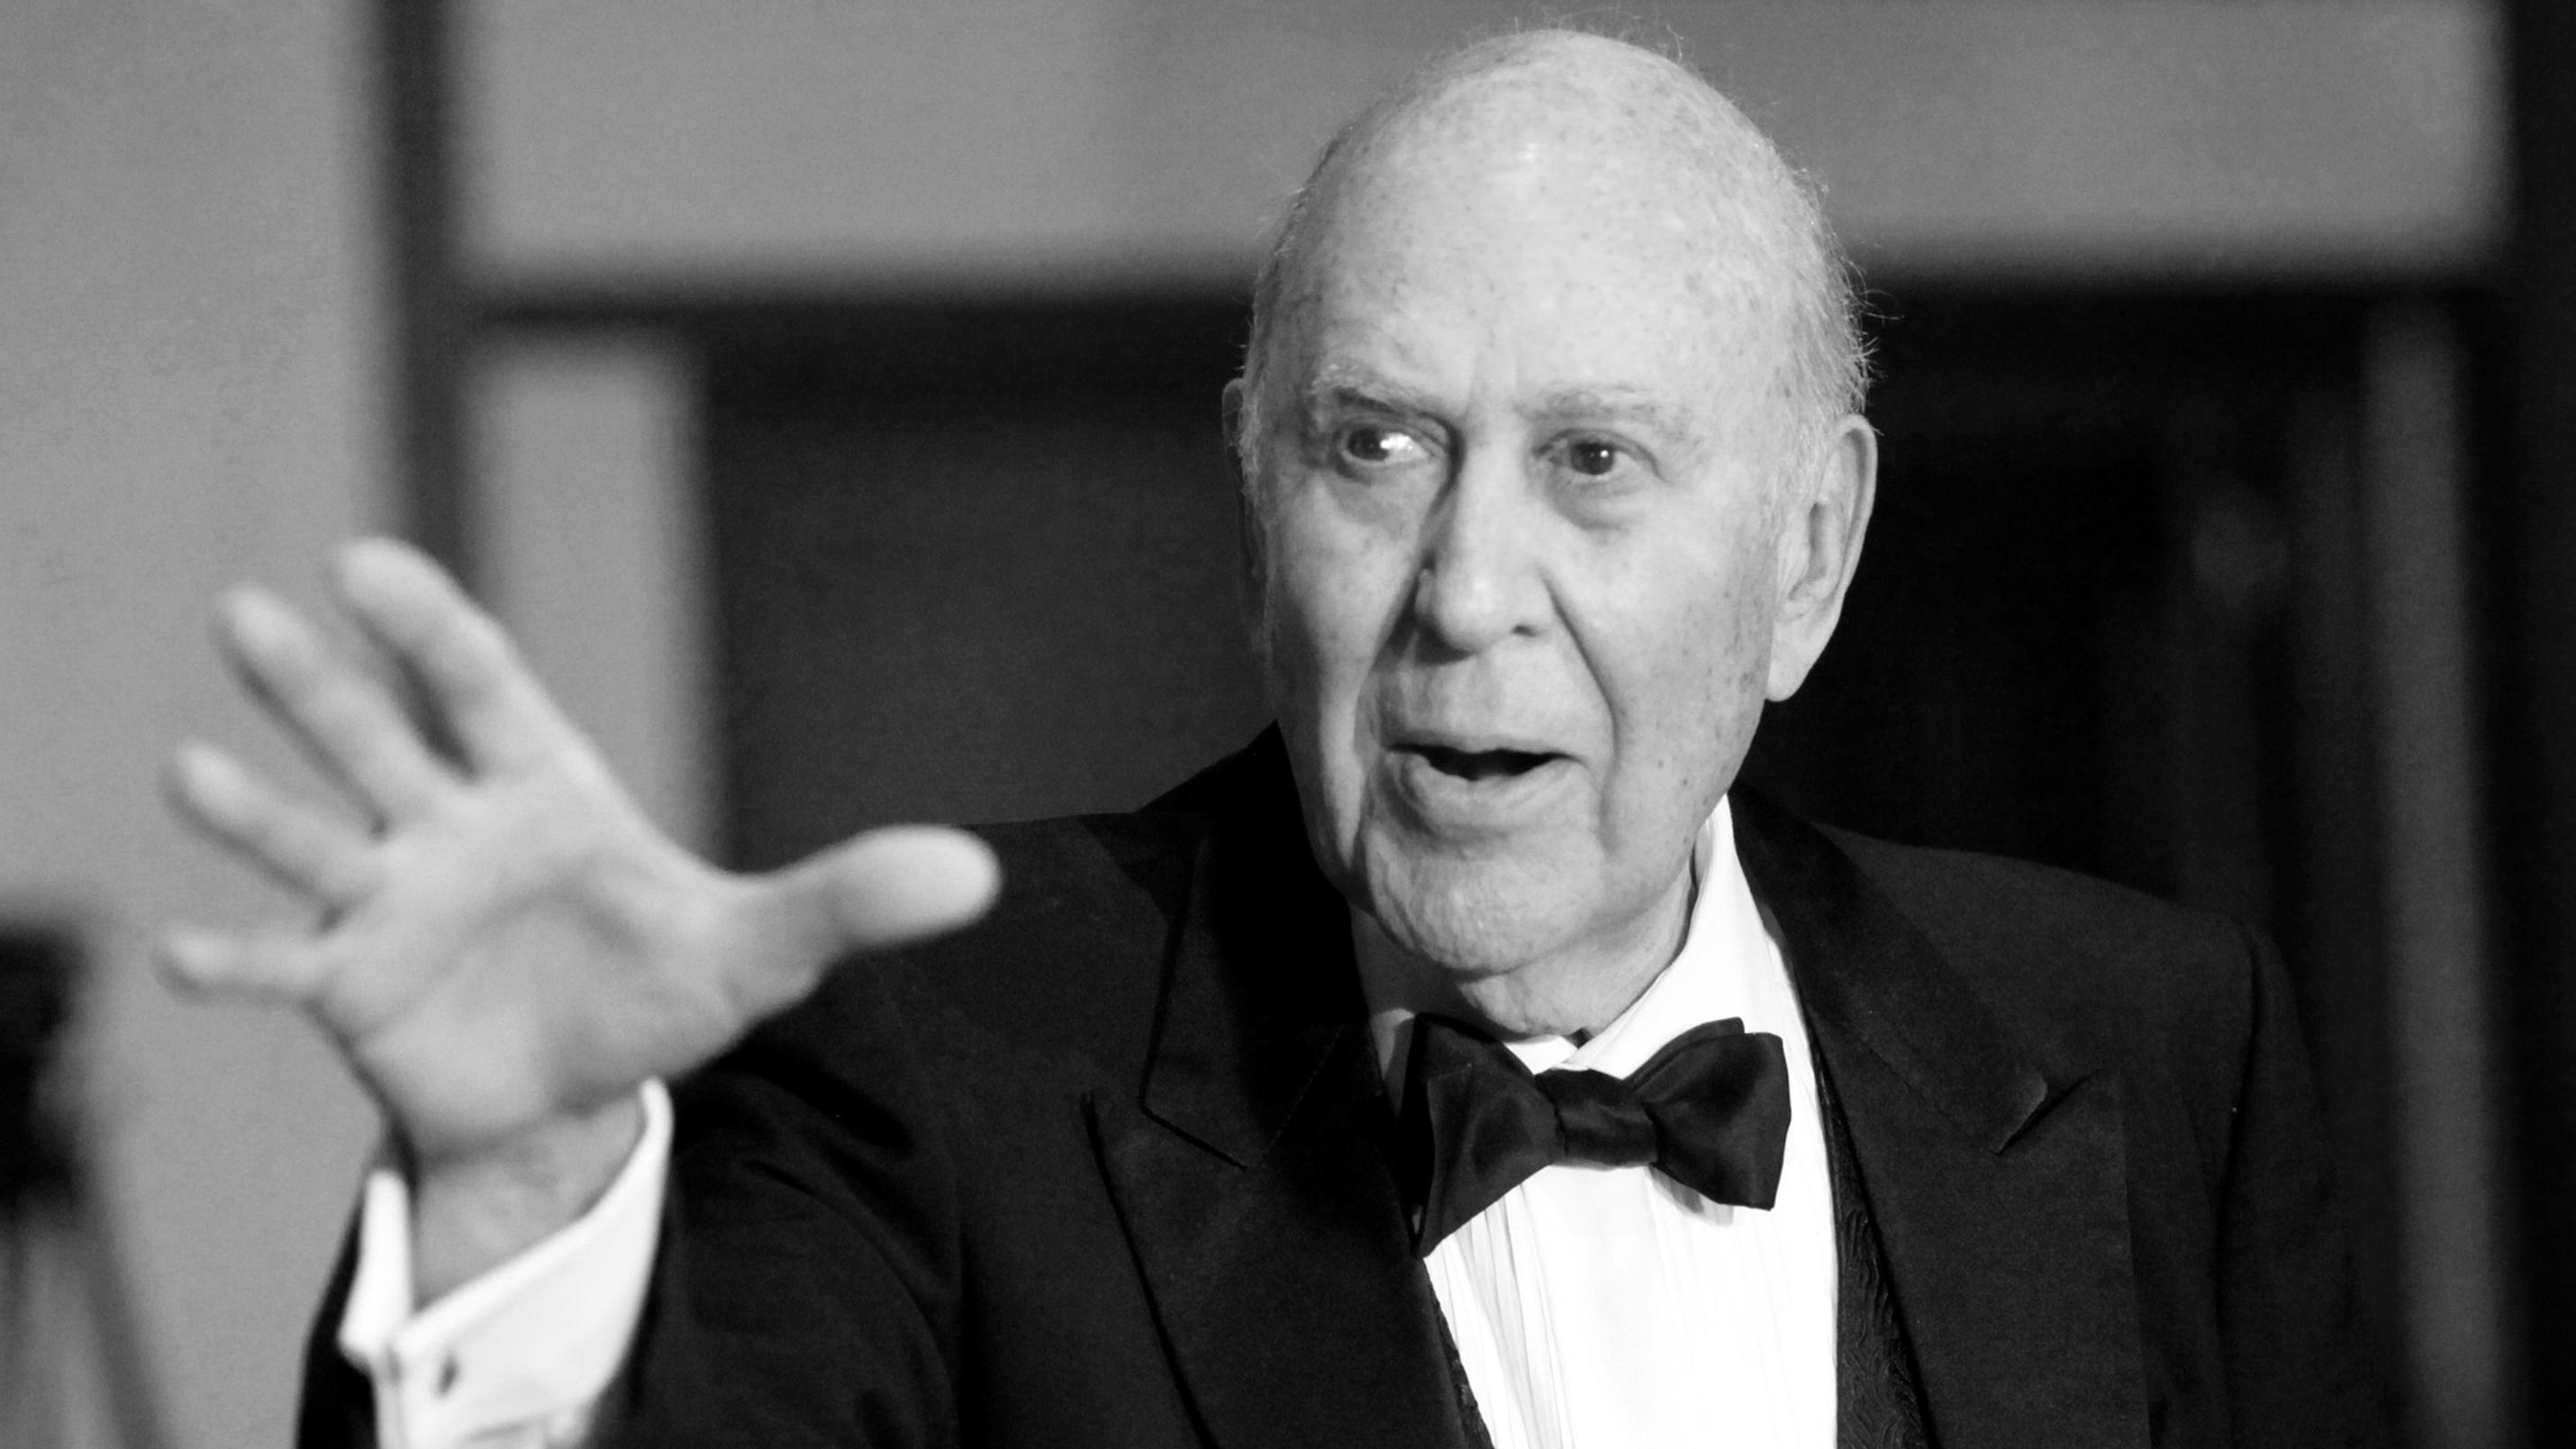 FILE PHOTO: Master of Ceremonies for the night Carl Reiner arrives at the 62nd Annual Directors Guild of America Awards in Los Angeles January 30, 2010. REUTERS/Danny Moloshok/File Photo